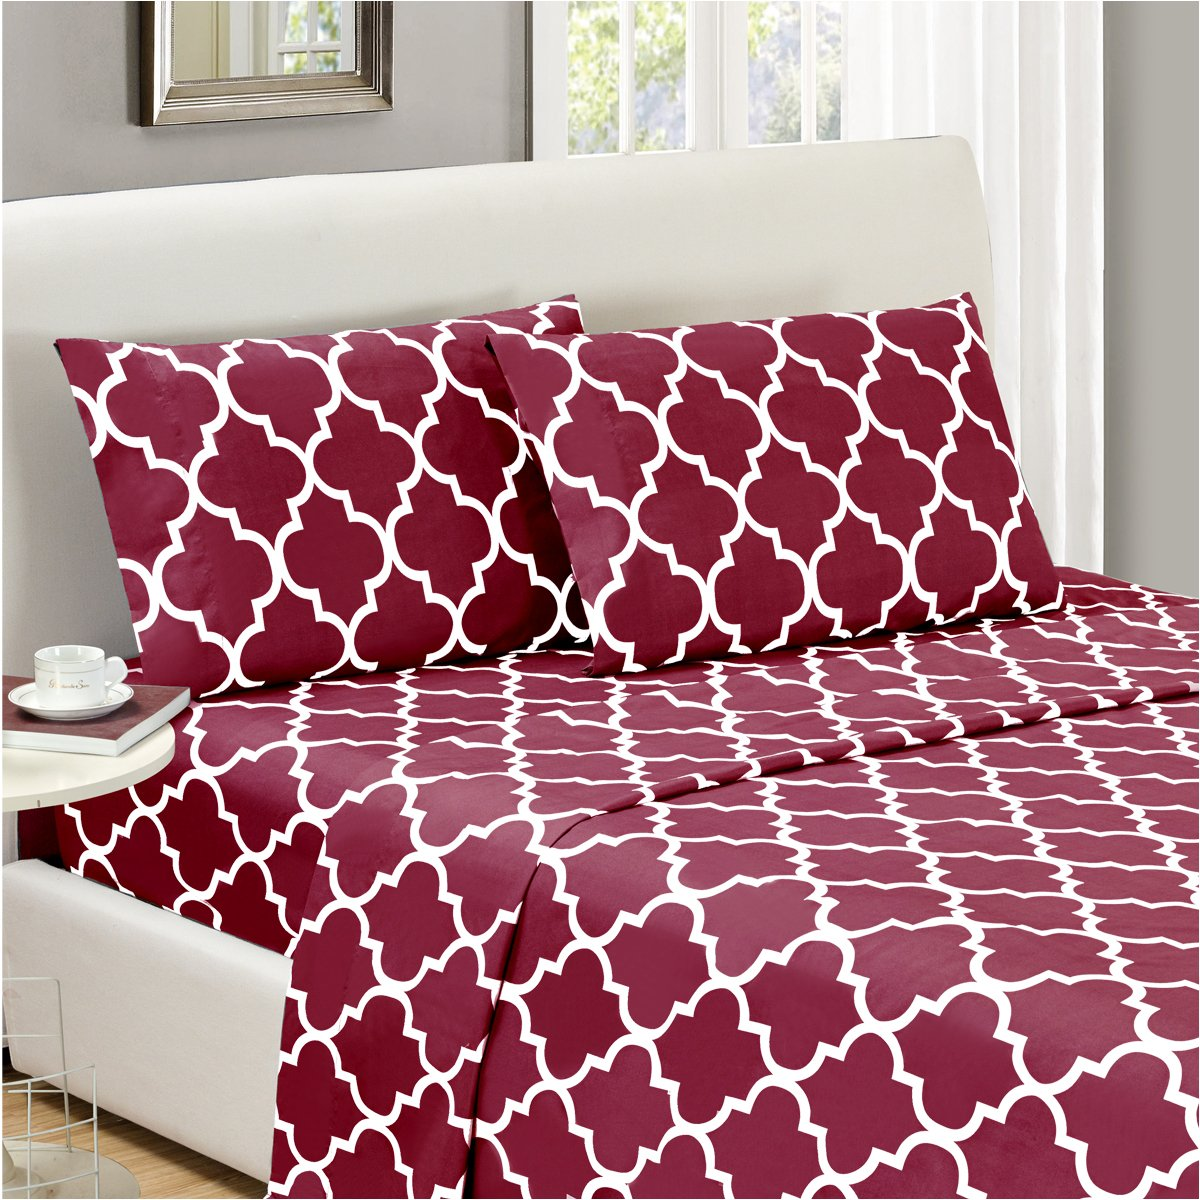 Mellanni Bed Sheet Set Full-Burgundy